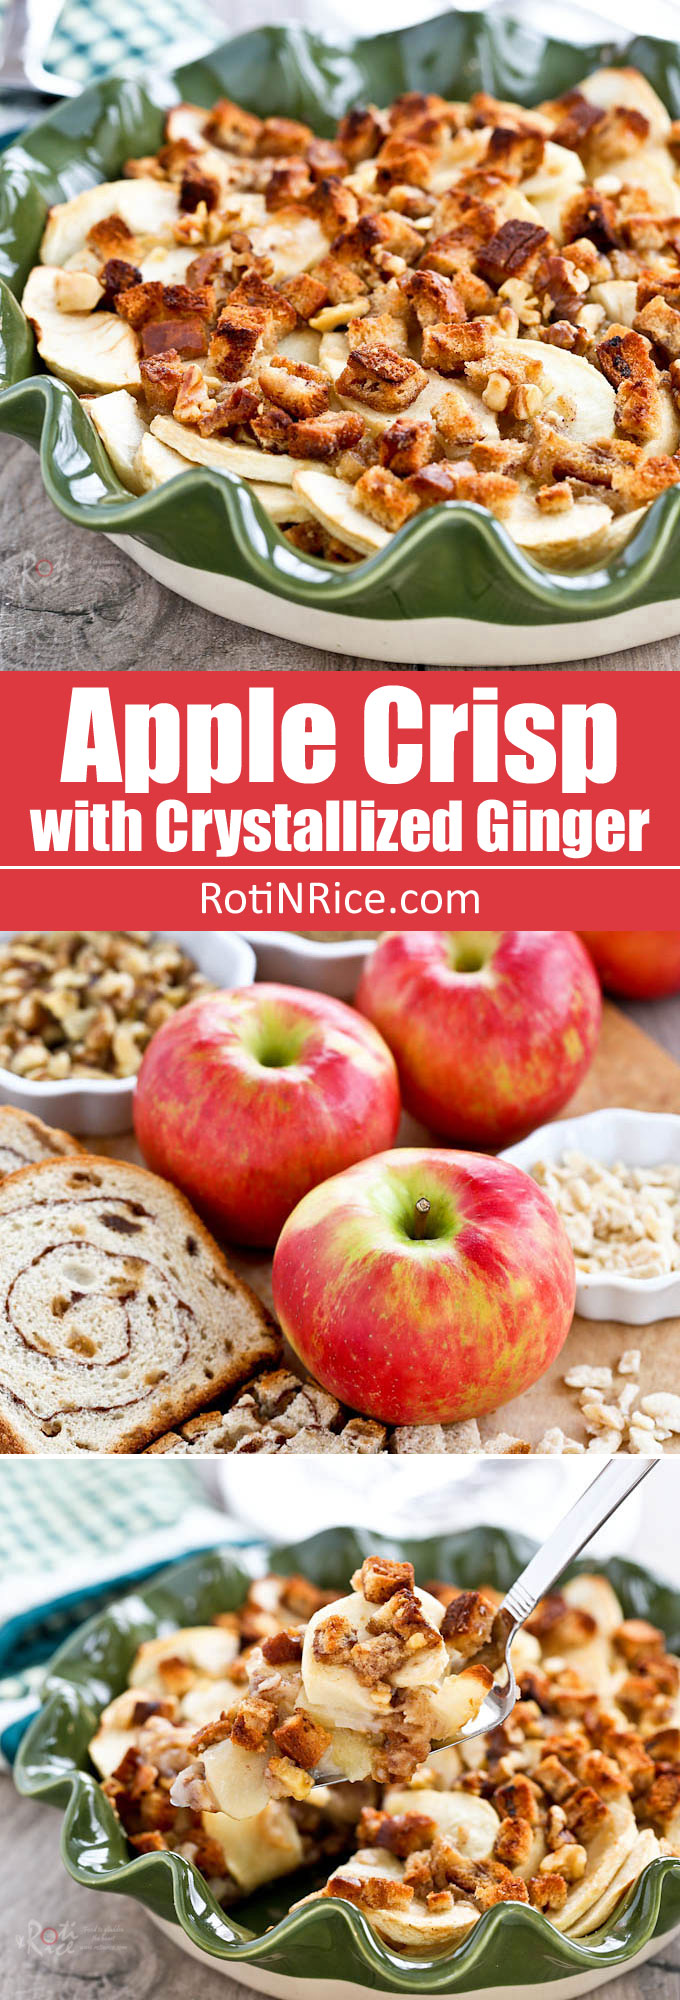 Easy to make Apple Crisp with Crystallized Ginger, cinnamon bread, and walnuts. Deliciously crisp and warmly spiced. Best ever dessert for this time of the year! | RotiNRice.com